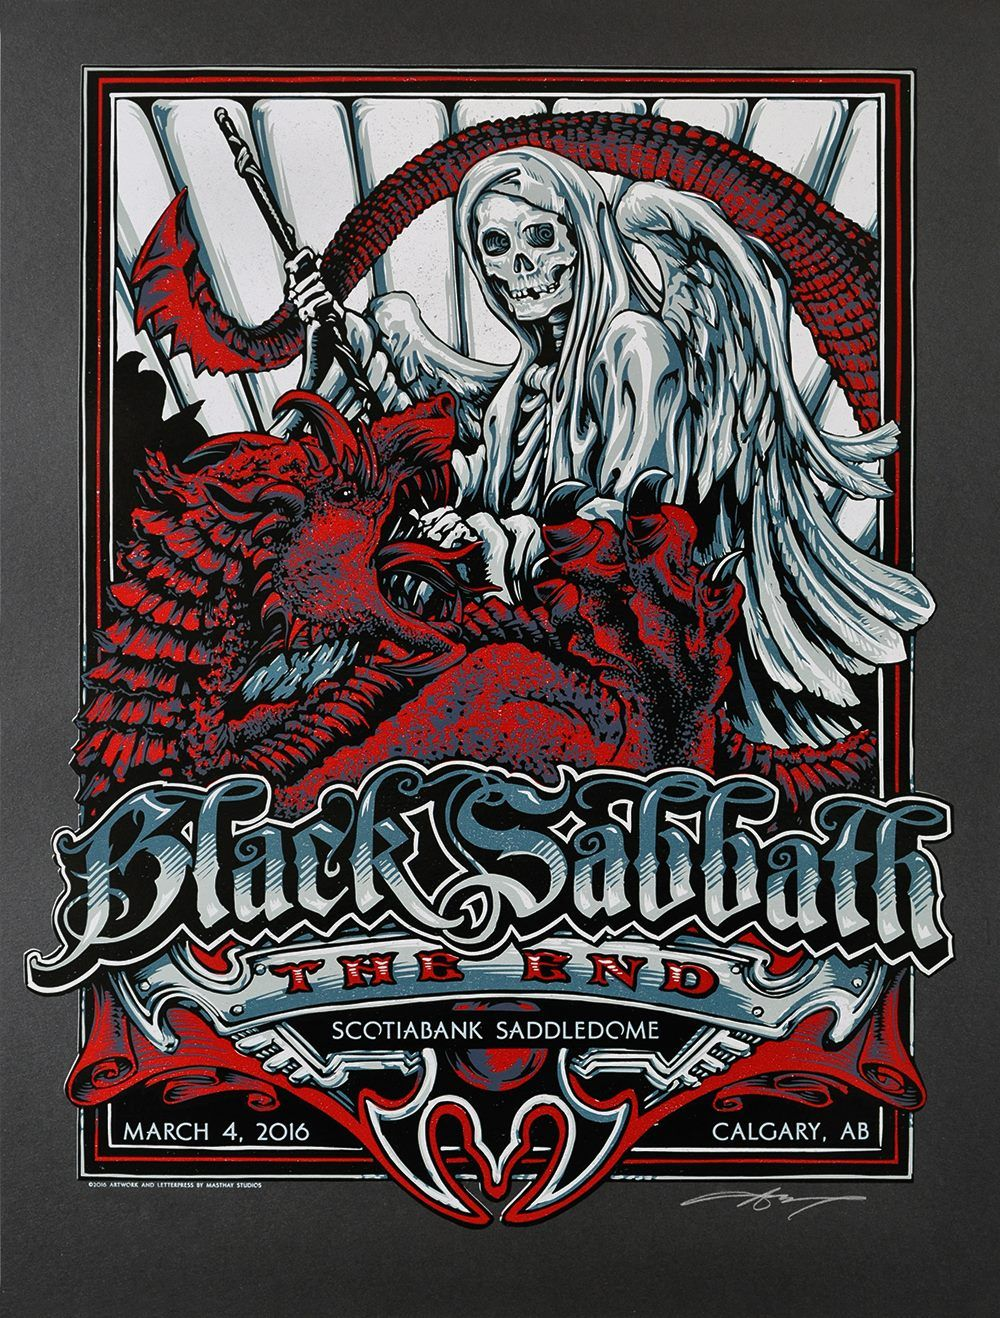 INSIDE THE ROCK POSTER FRAME BLOG: Black Sabbath AJ Masthay Calgary ...